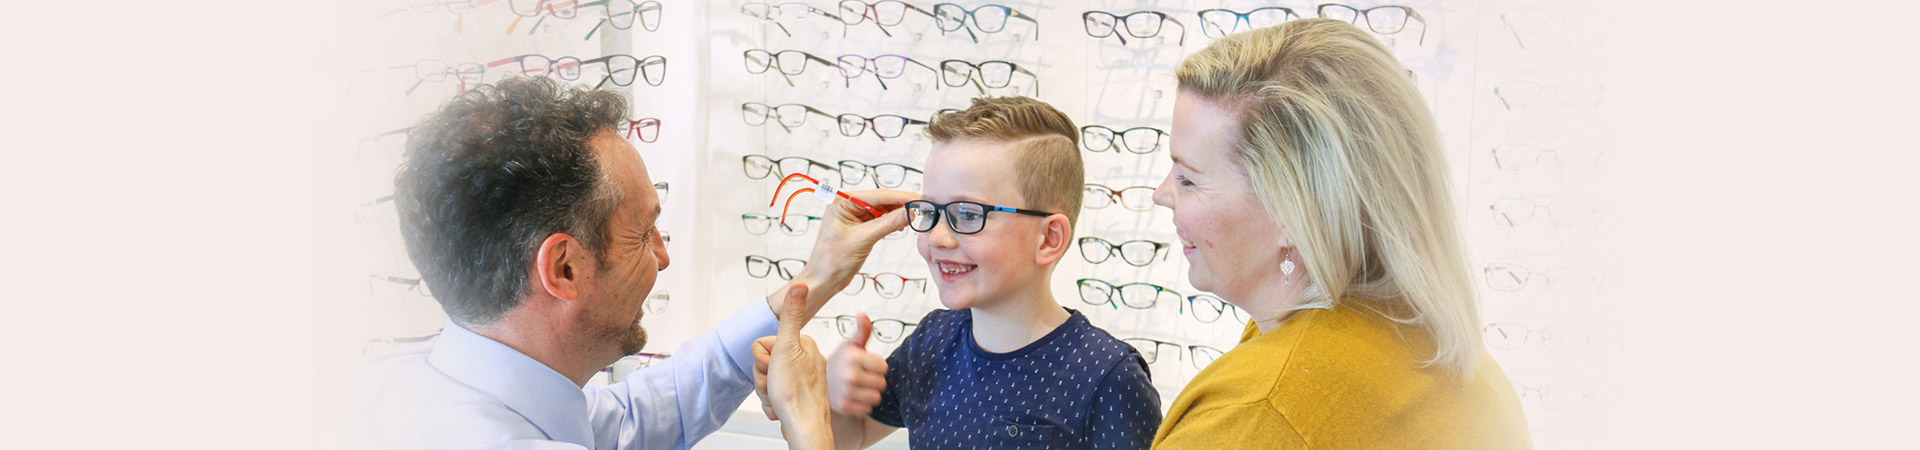 Children's Eyecare - Graham Hill Eyecare